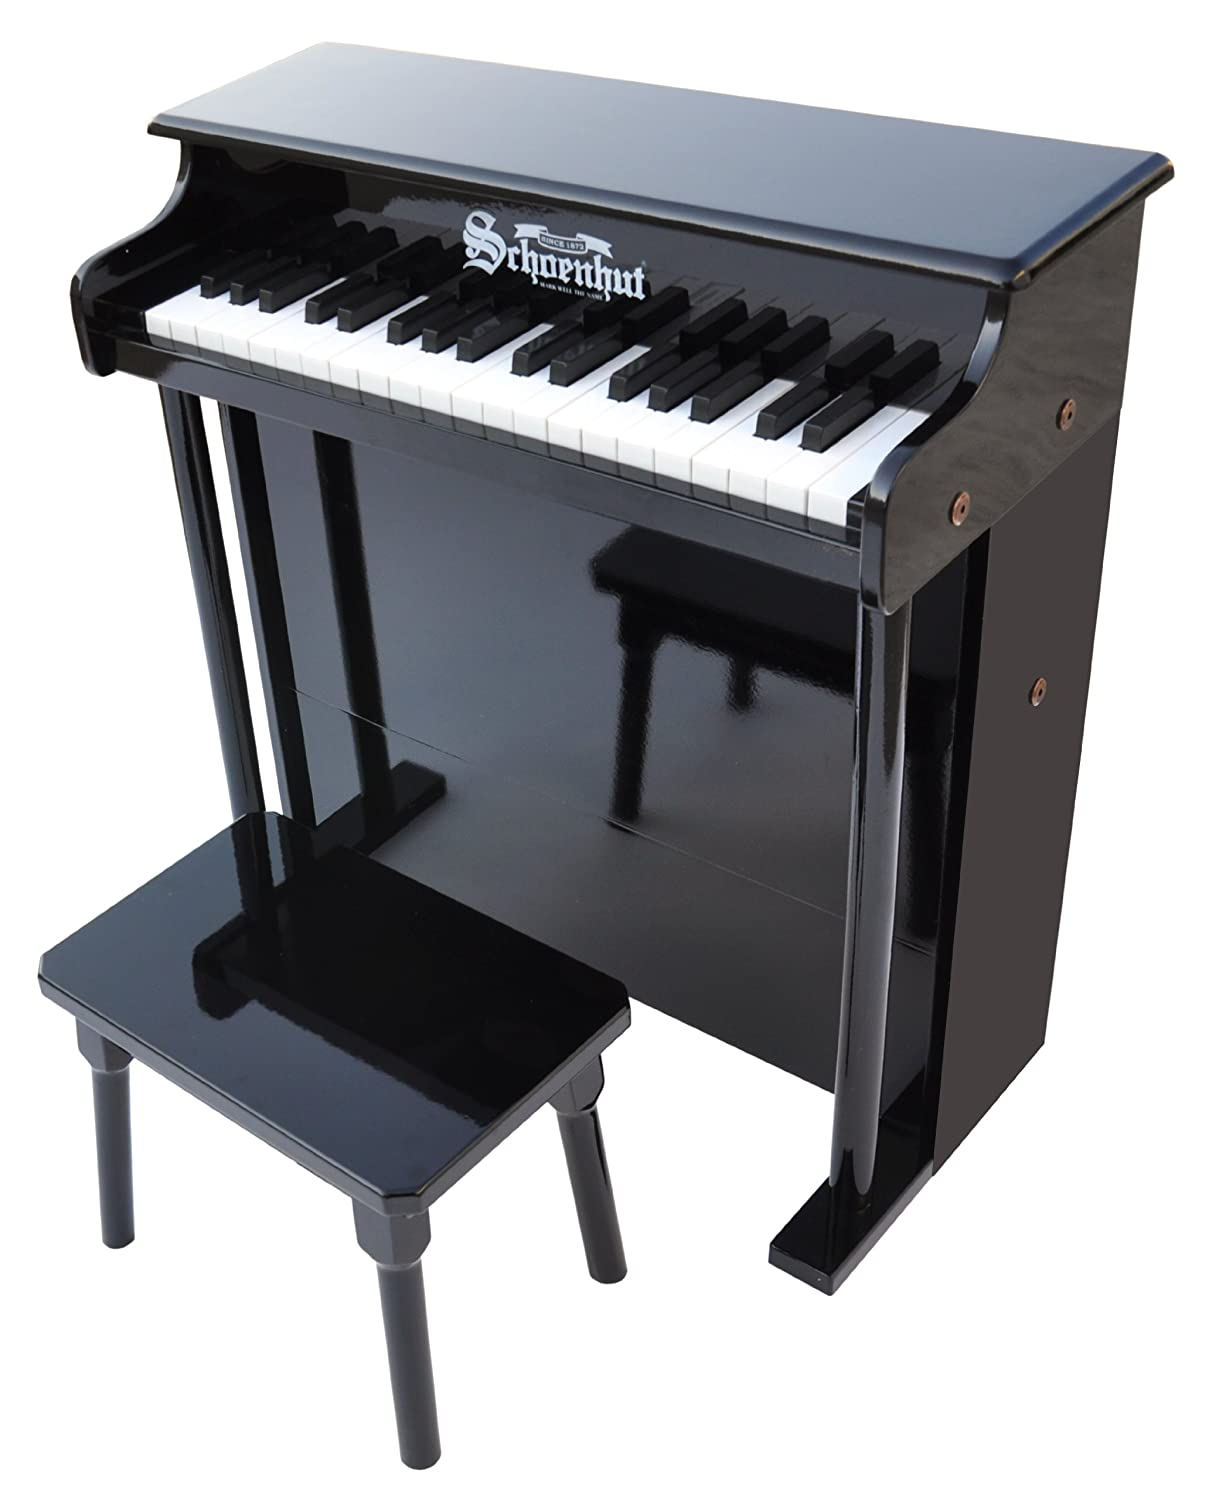 Top 8 Best Upright Pianos Reviews in 2020 1